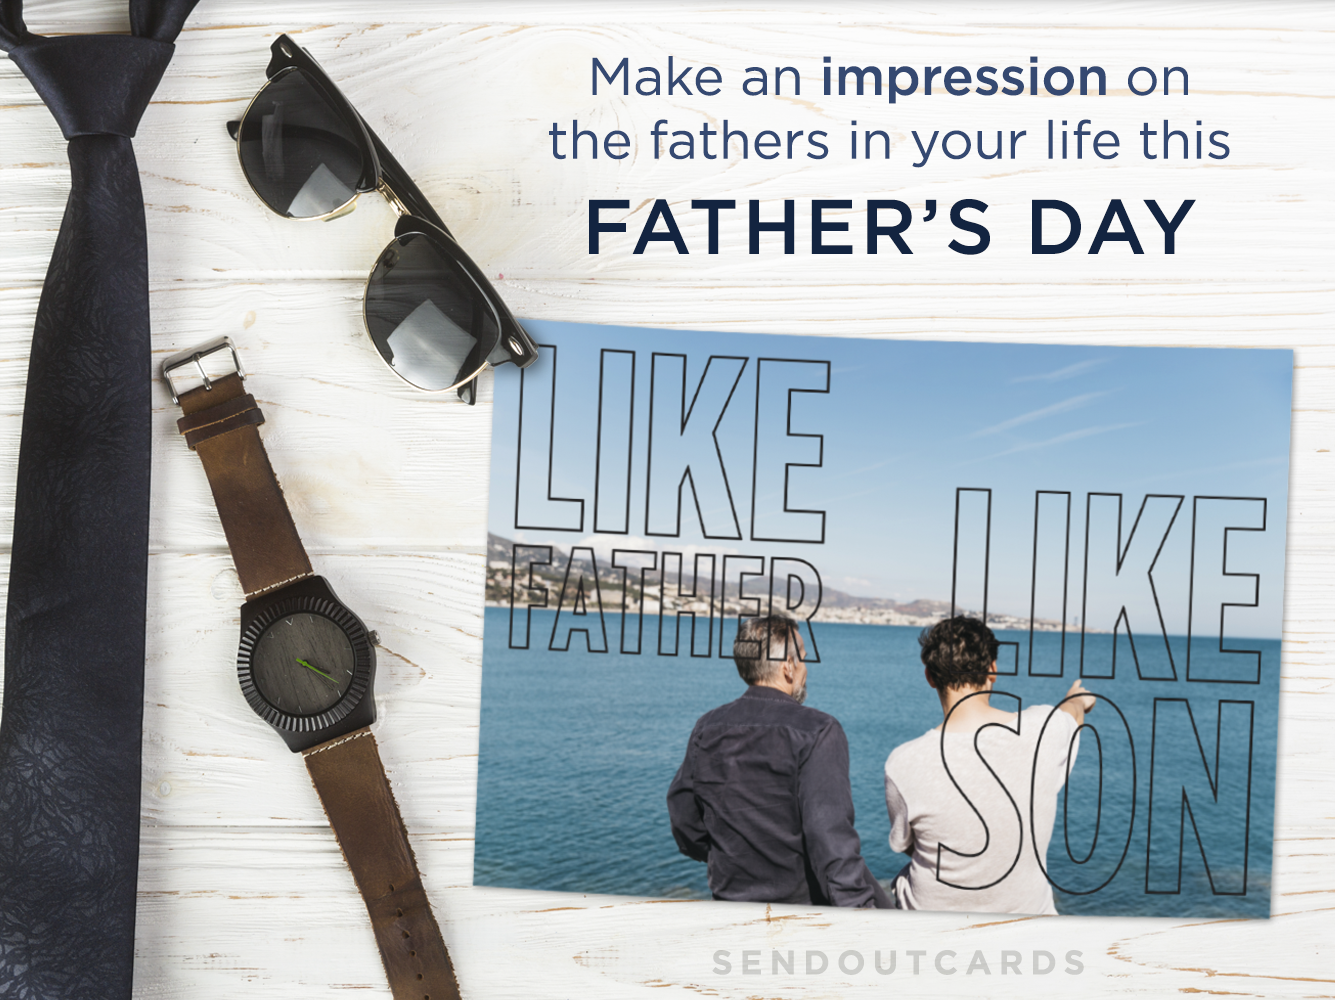 RP_FathersDay_ad.png